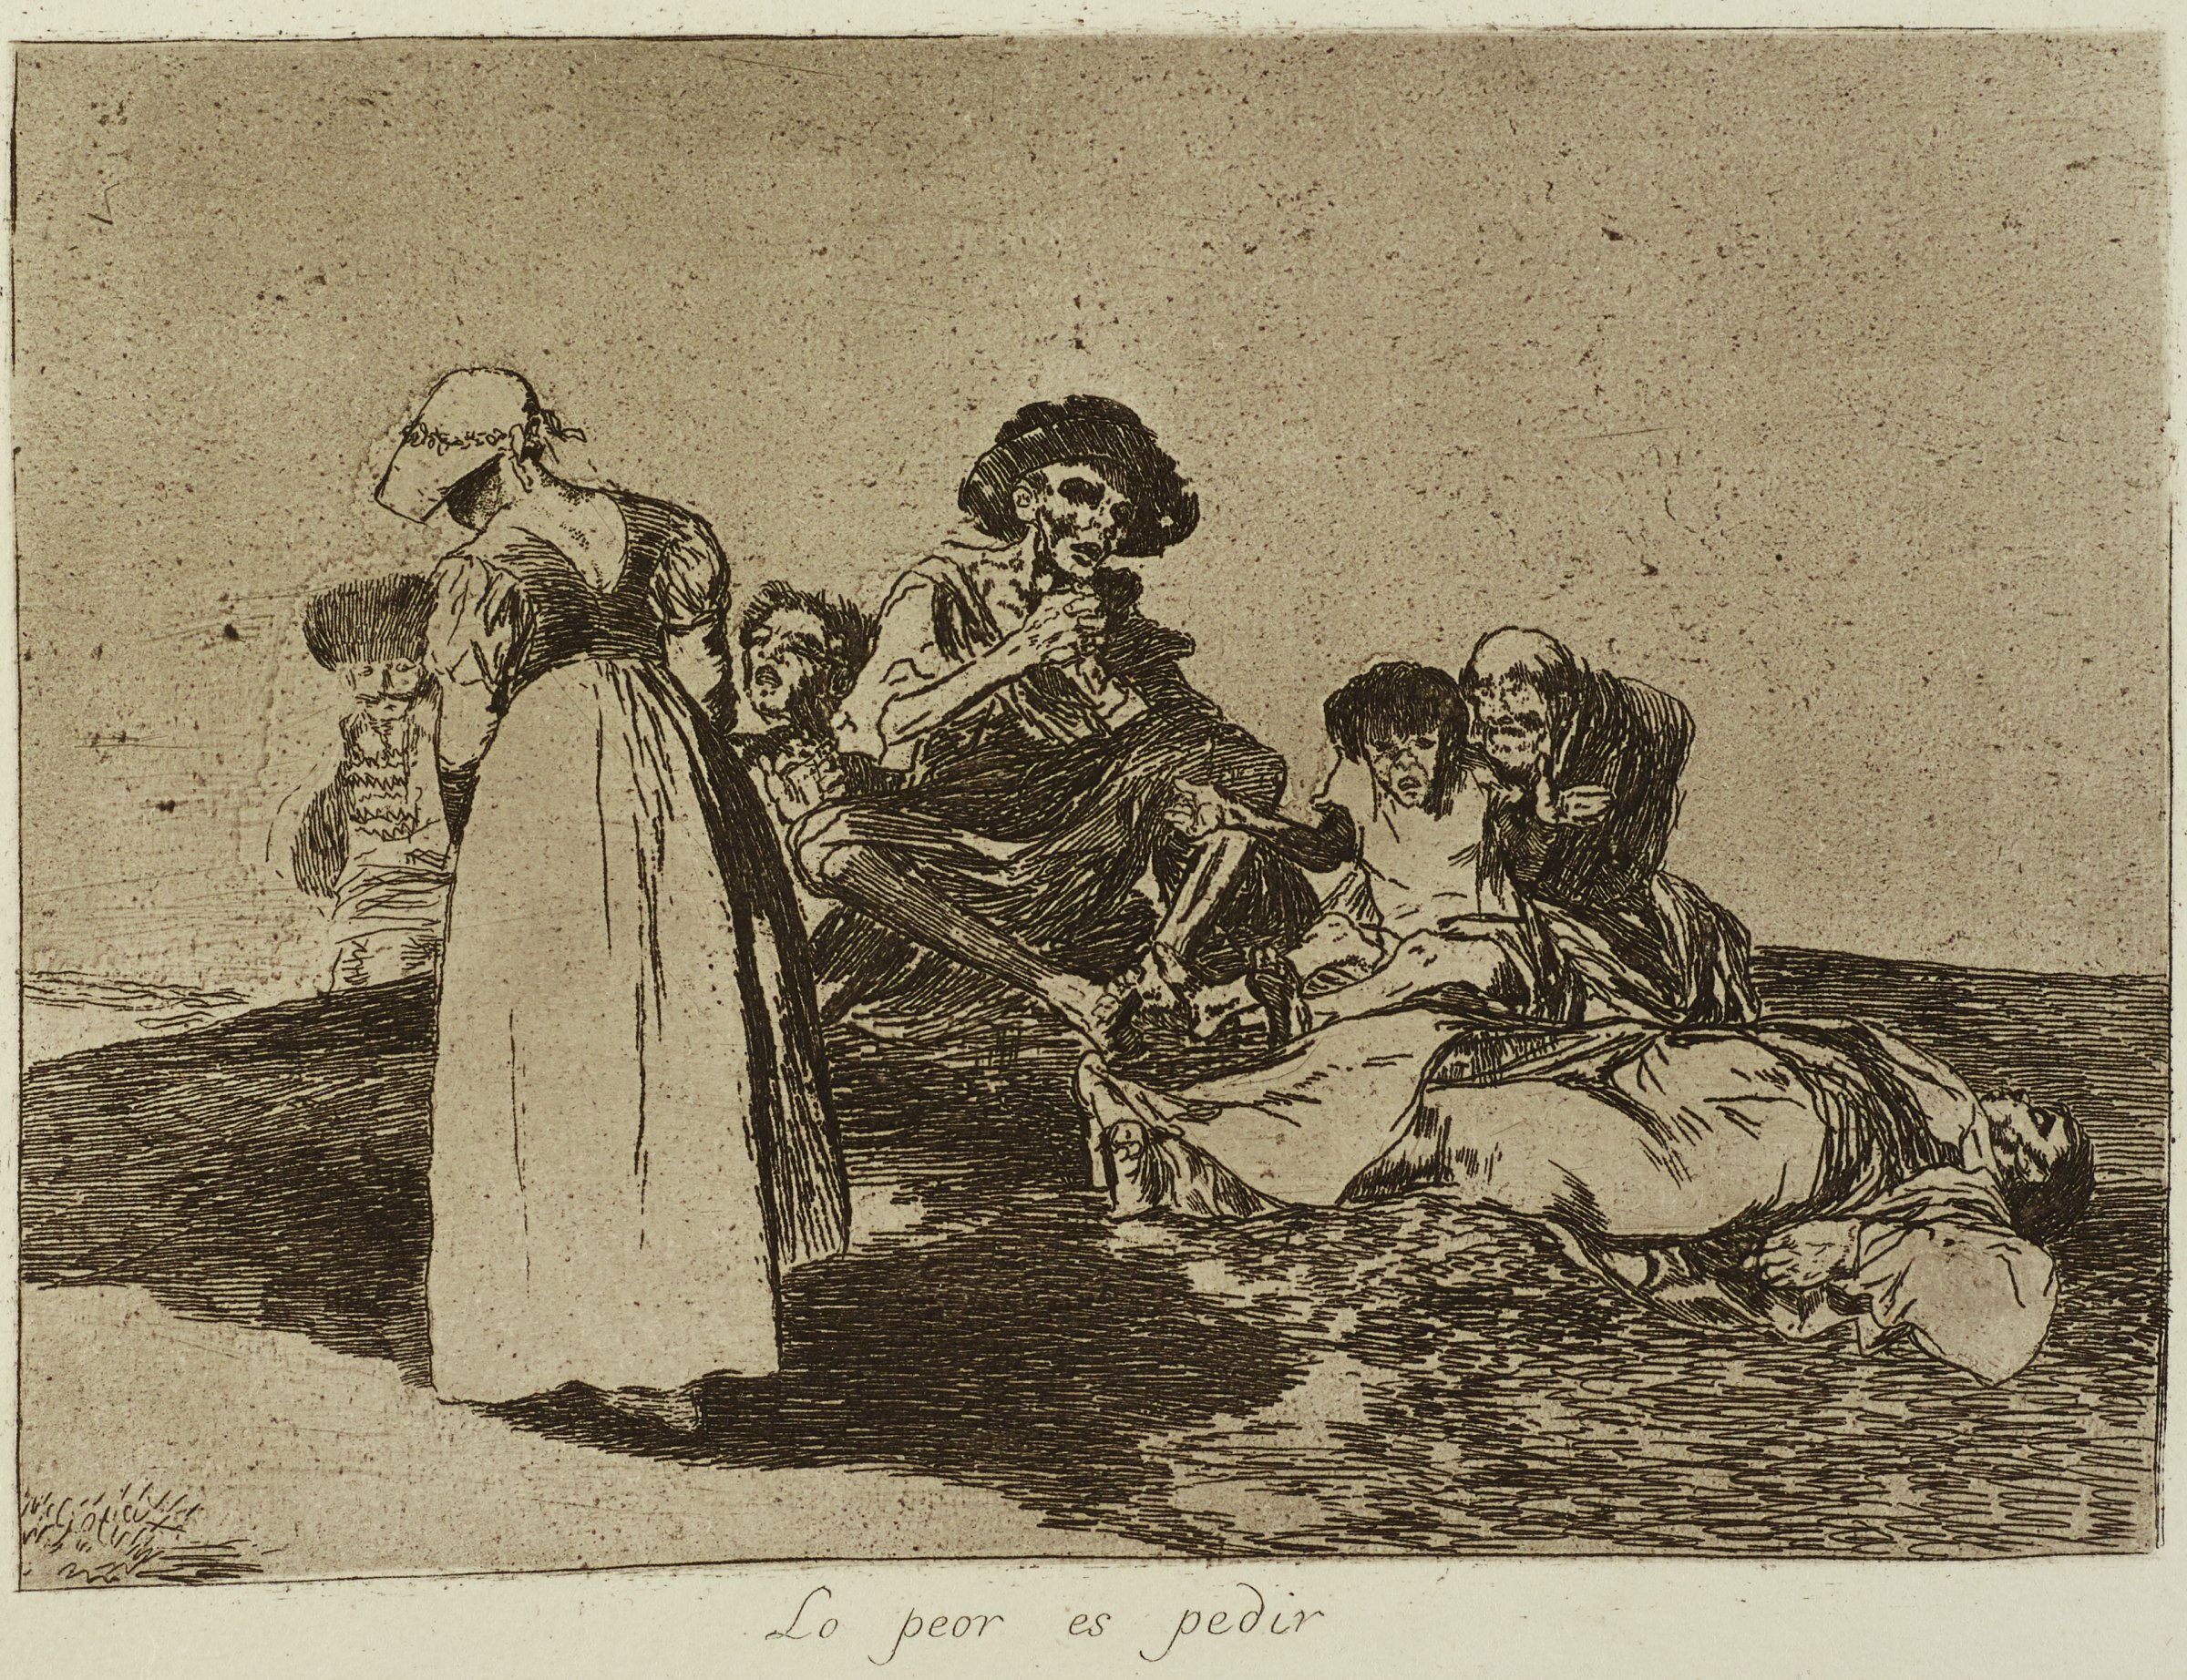 Four figures that appear to be starving are sitting on a small mound, pleading with those that are passing by. One figure lays flat on the right. A woman dressed nicely walks by with her head down. A nicely dressed man is partially seen on the left.